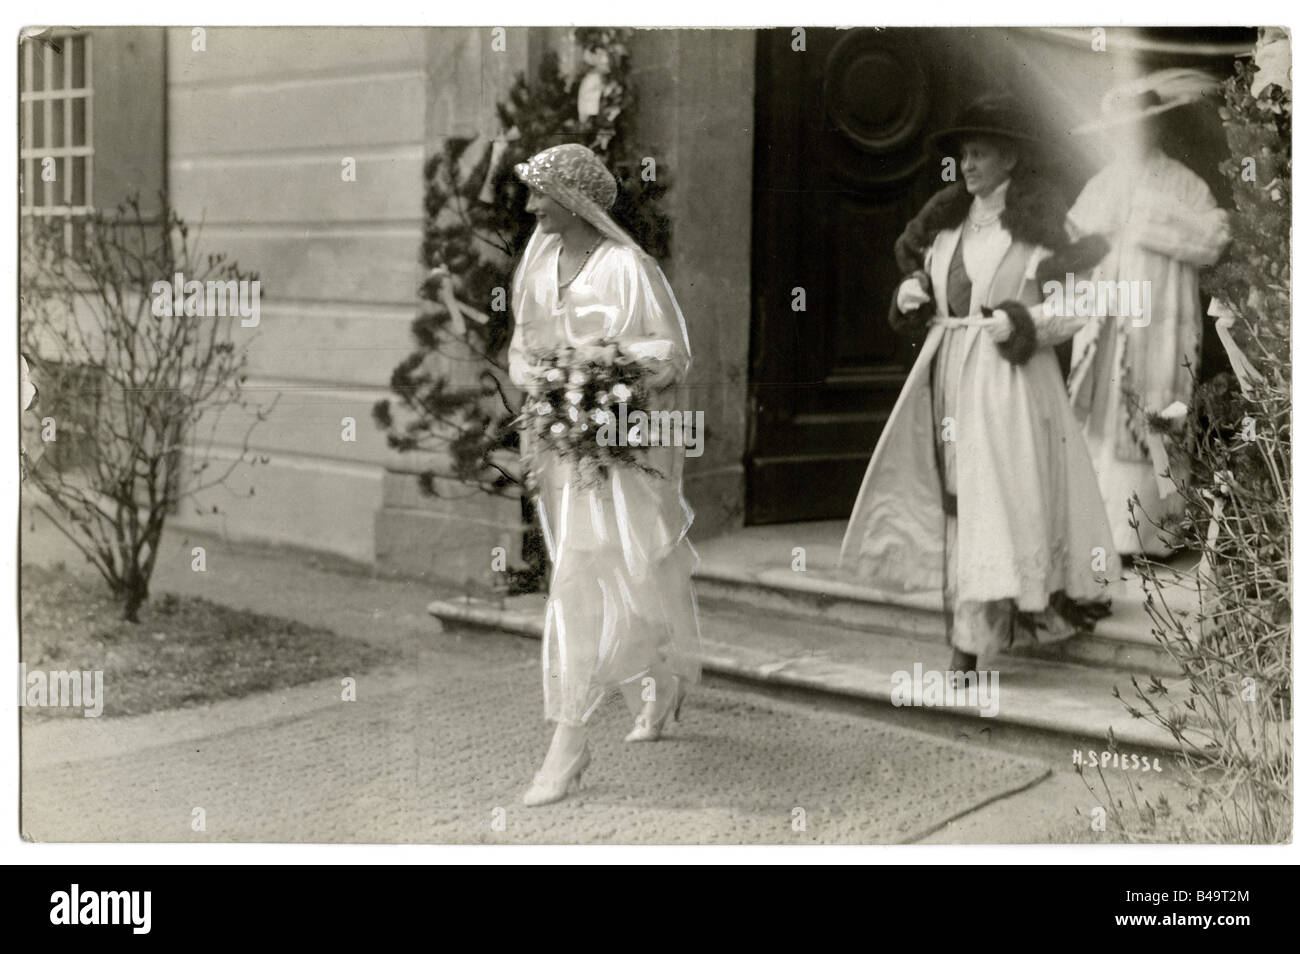 Antonia, 7.10.1899 - 31.7.1954, Crown Princess of Bavaria 7.4.1921 - 31.7.1954, during her marriage with Crown Prince Stock Photo